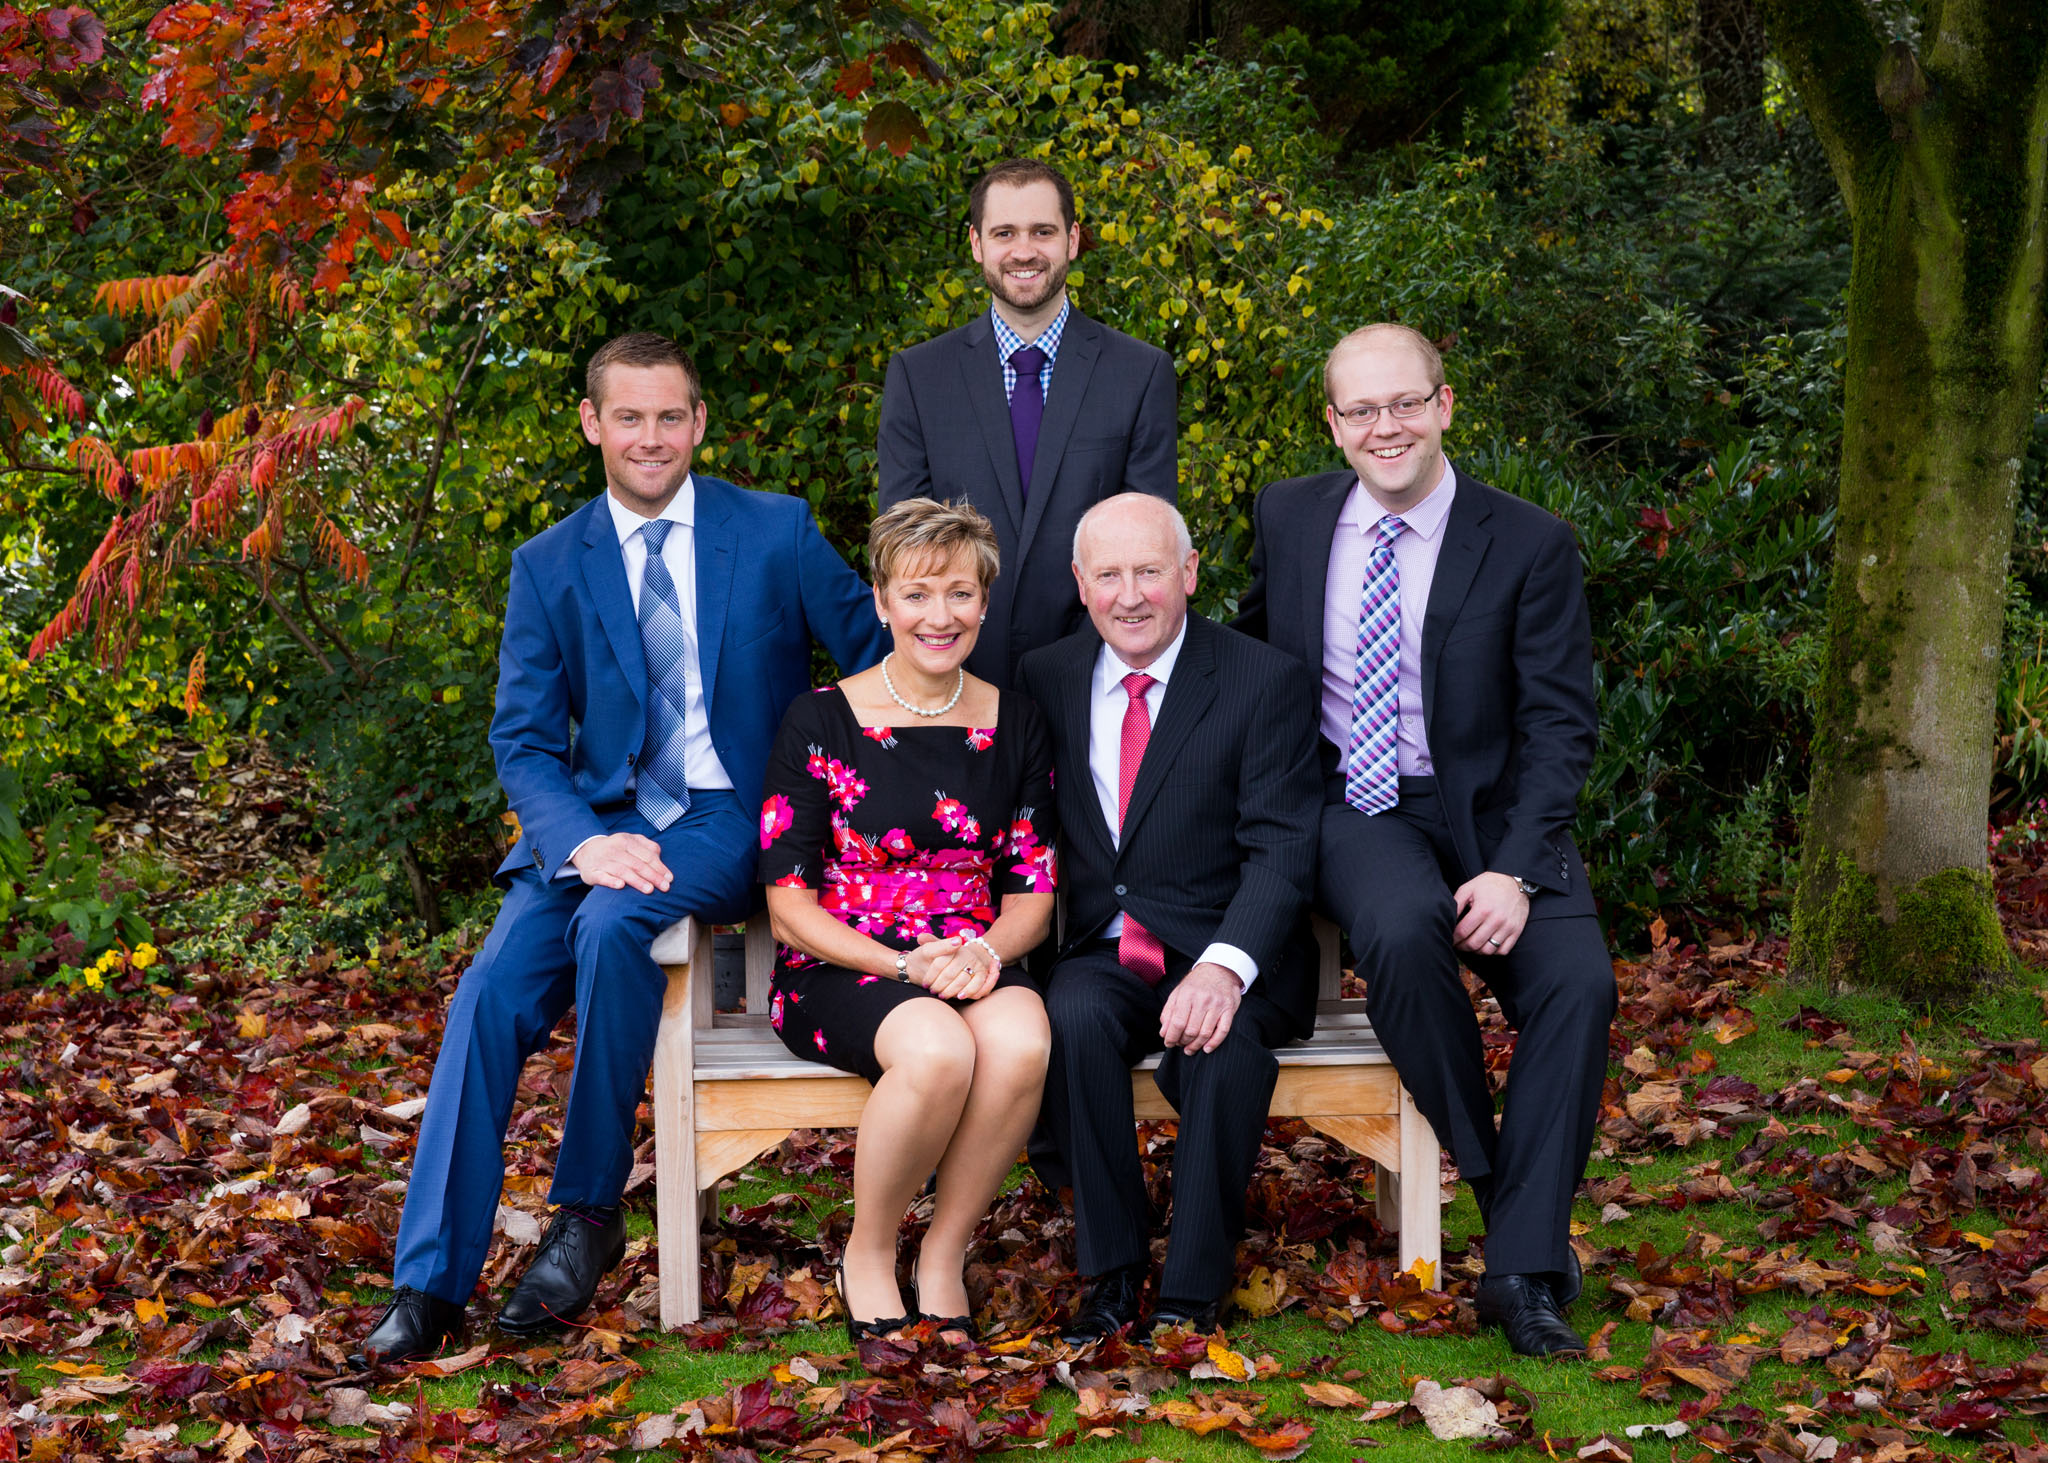 A formal family portrait to mark a ruby wedding in Cheshire